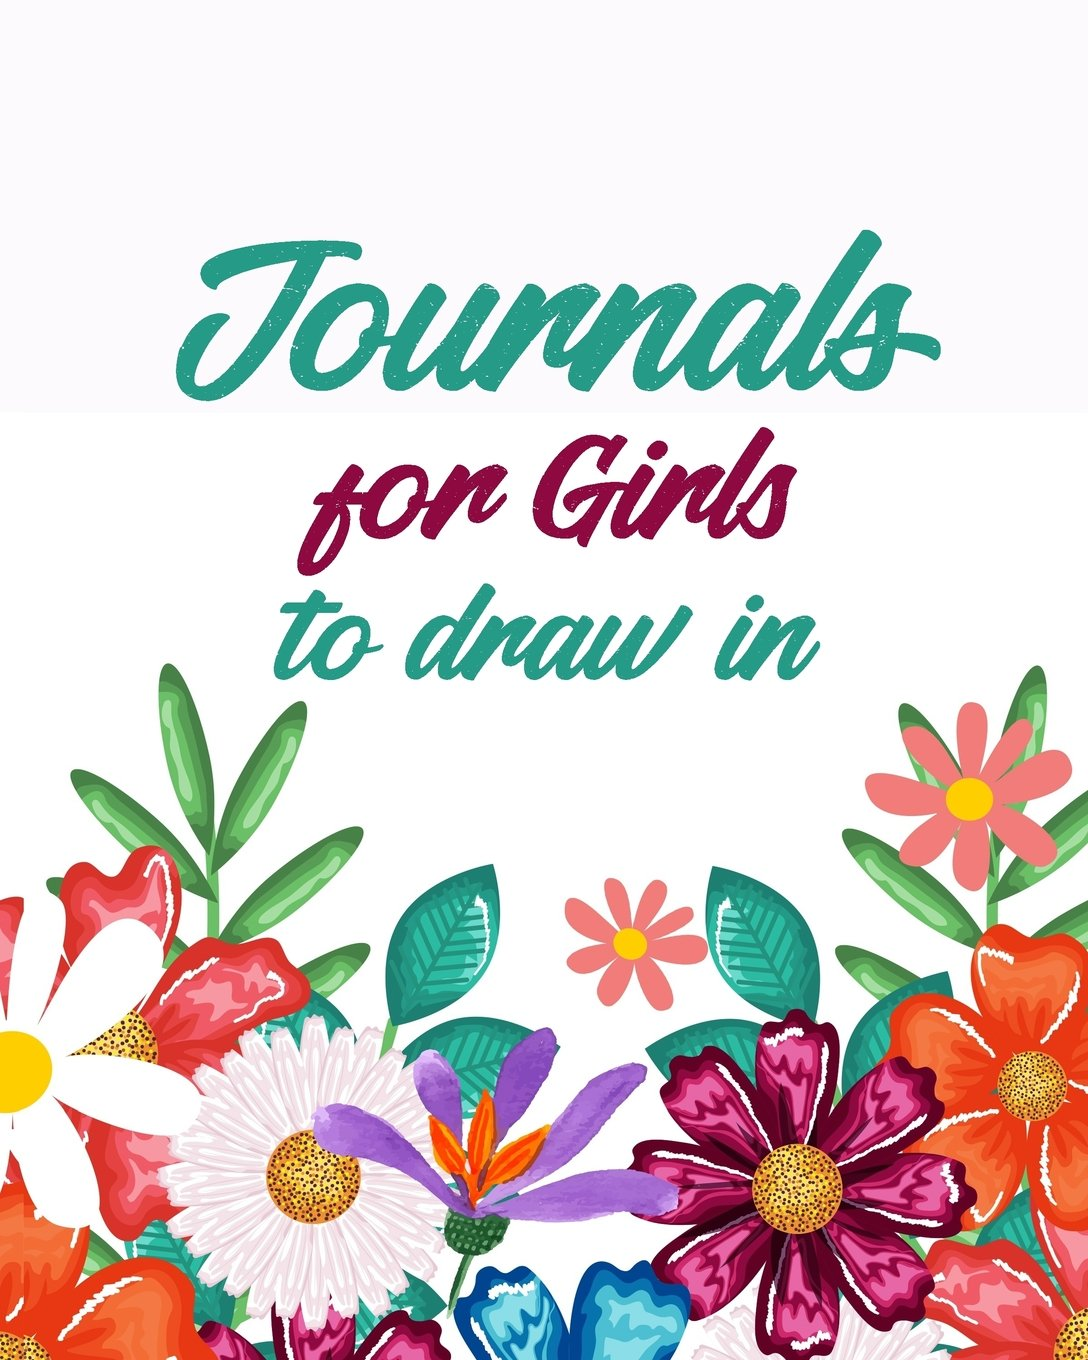 Journals For Girls To Draw In: Blank Journals To Write In, Doodle In, Draw In Or Sketch In, 8